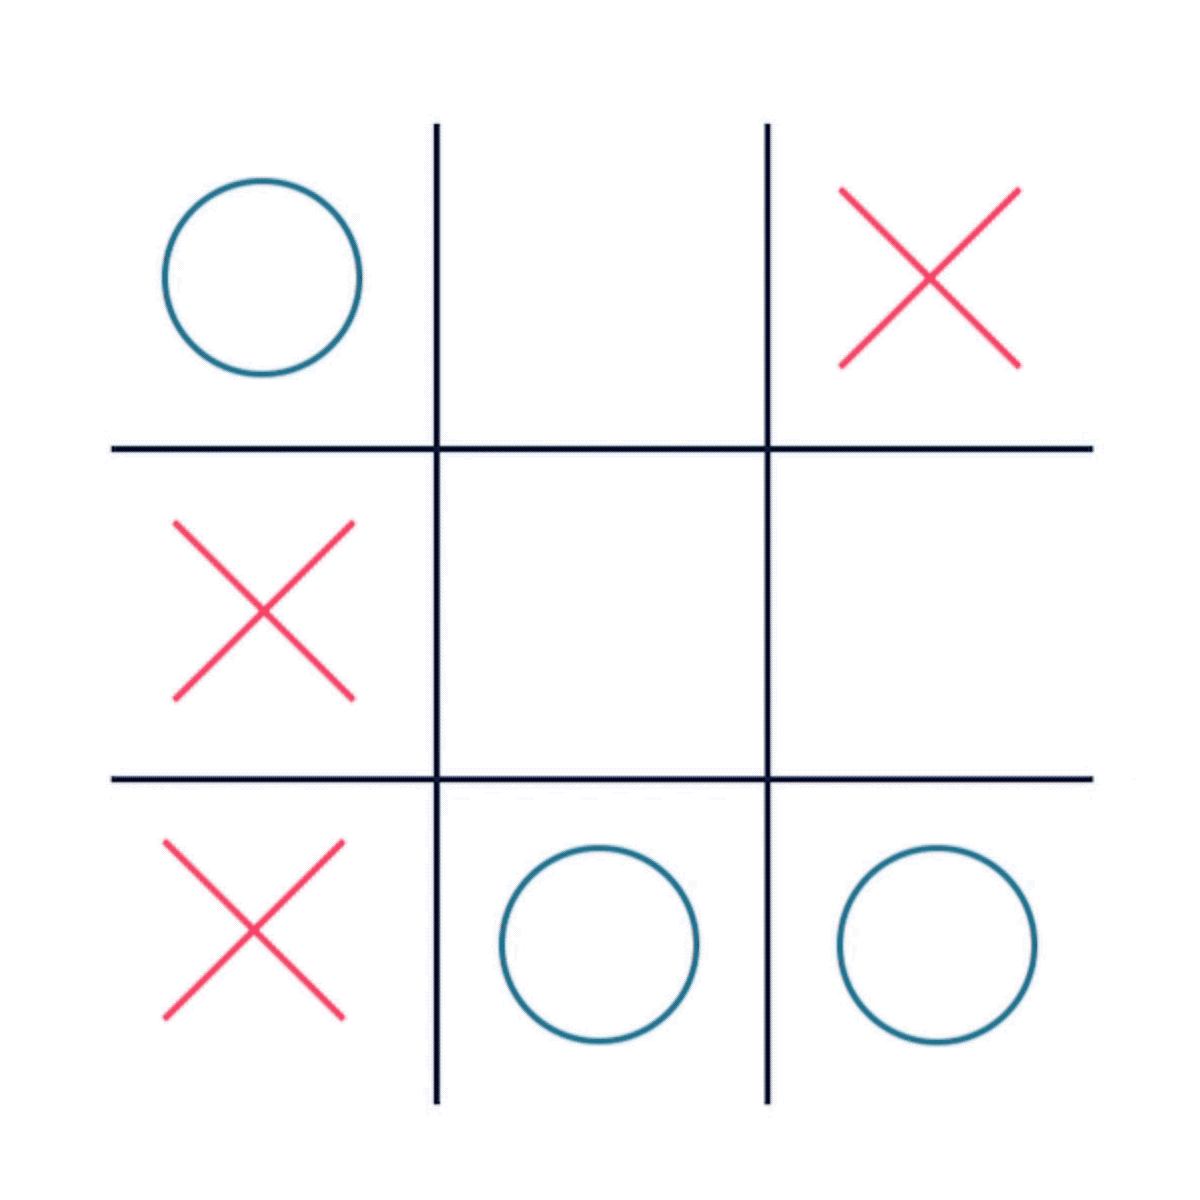 Tic Tac Toe - Creating Unbeatable AI - Towards Data Science